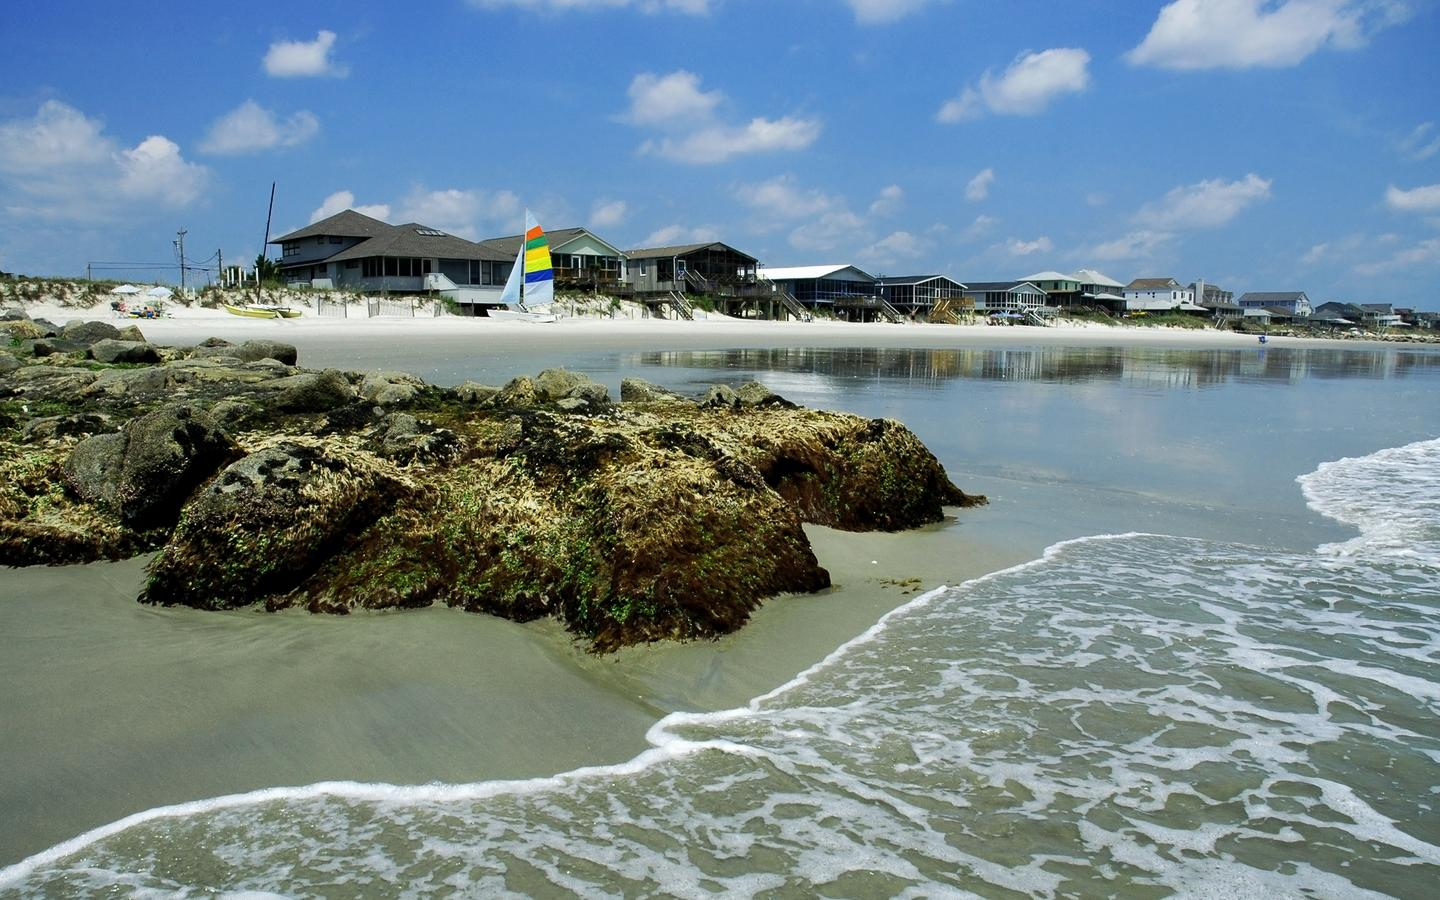 North Myrtle Beach Hotels >> 20 Best Hotels In North Myrtle Beach Hotels From 50 Night